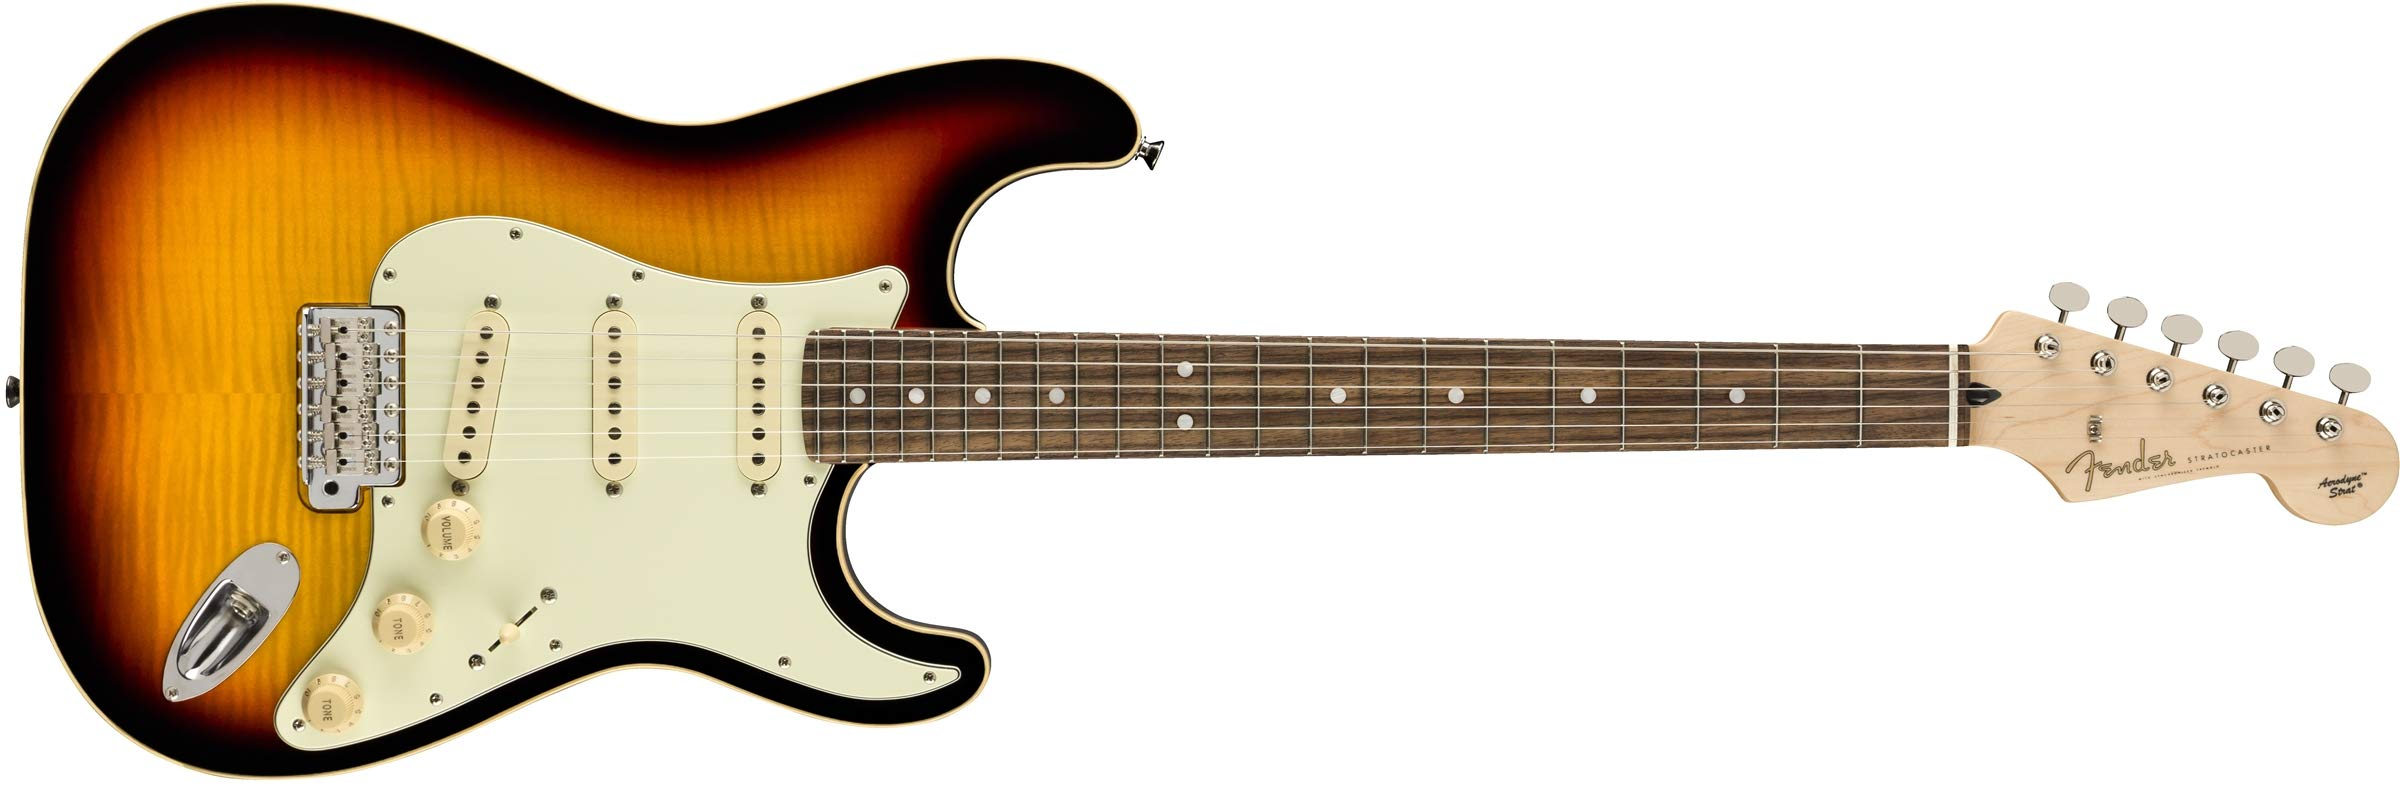 Cheap Fender Limited Edition Aerodyne Classic Flame Maple Top Stratocaster Electric Guitar (3-Color Sunburst) Black Friday & Cyber Monday 2019